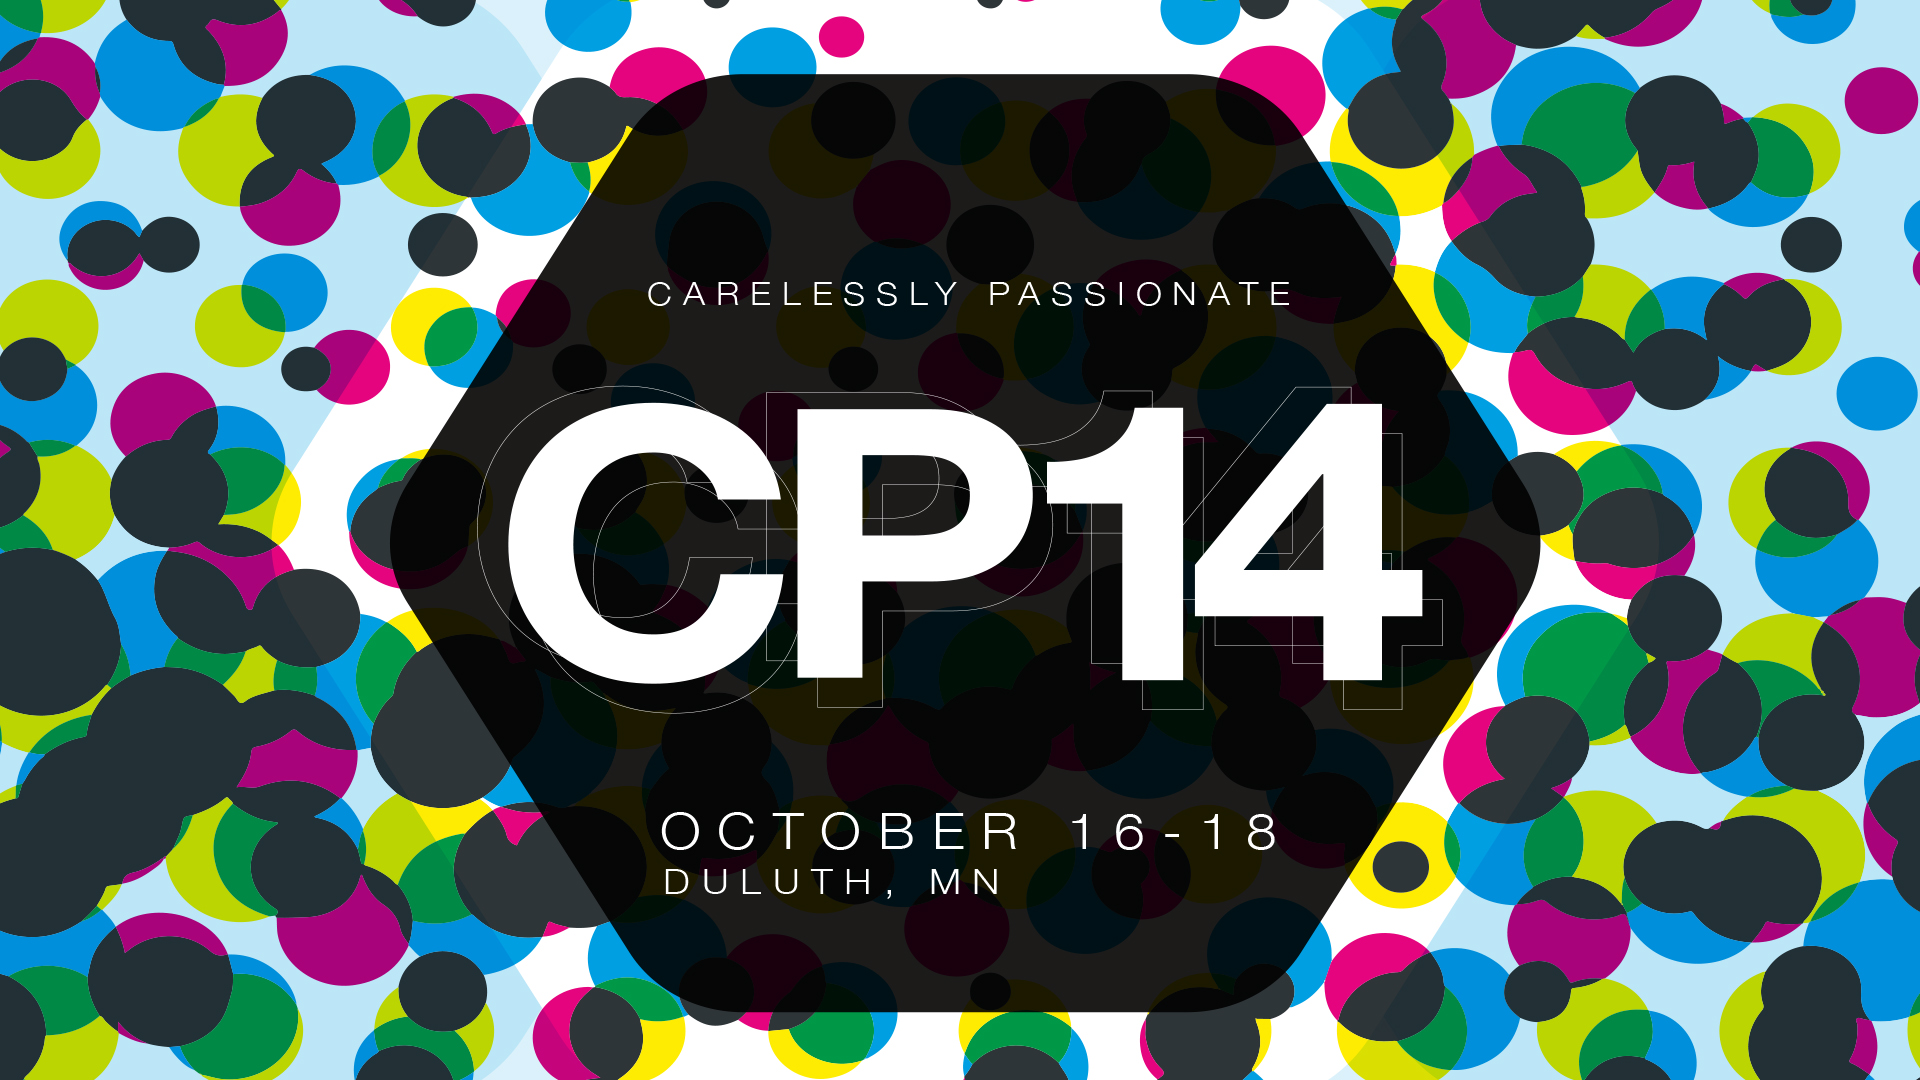 Carelessly Passionate 2014 - Vineyard Midwest North Region